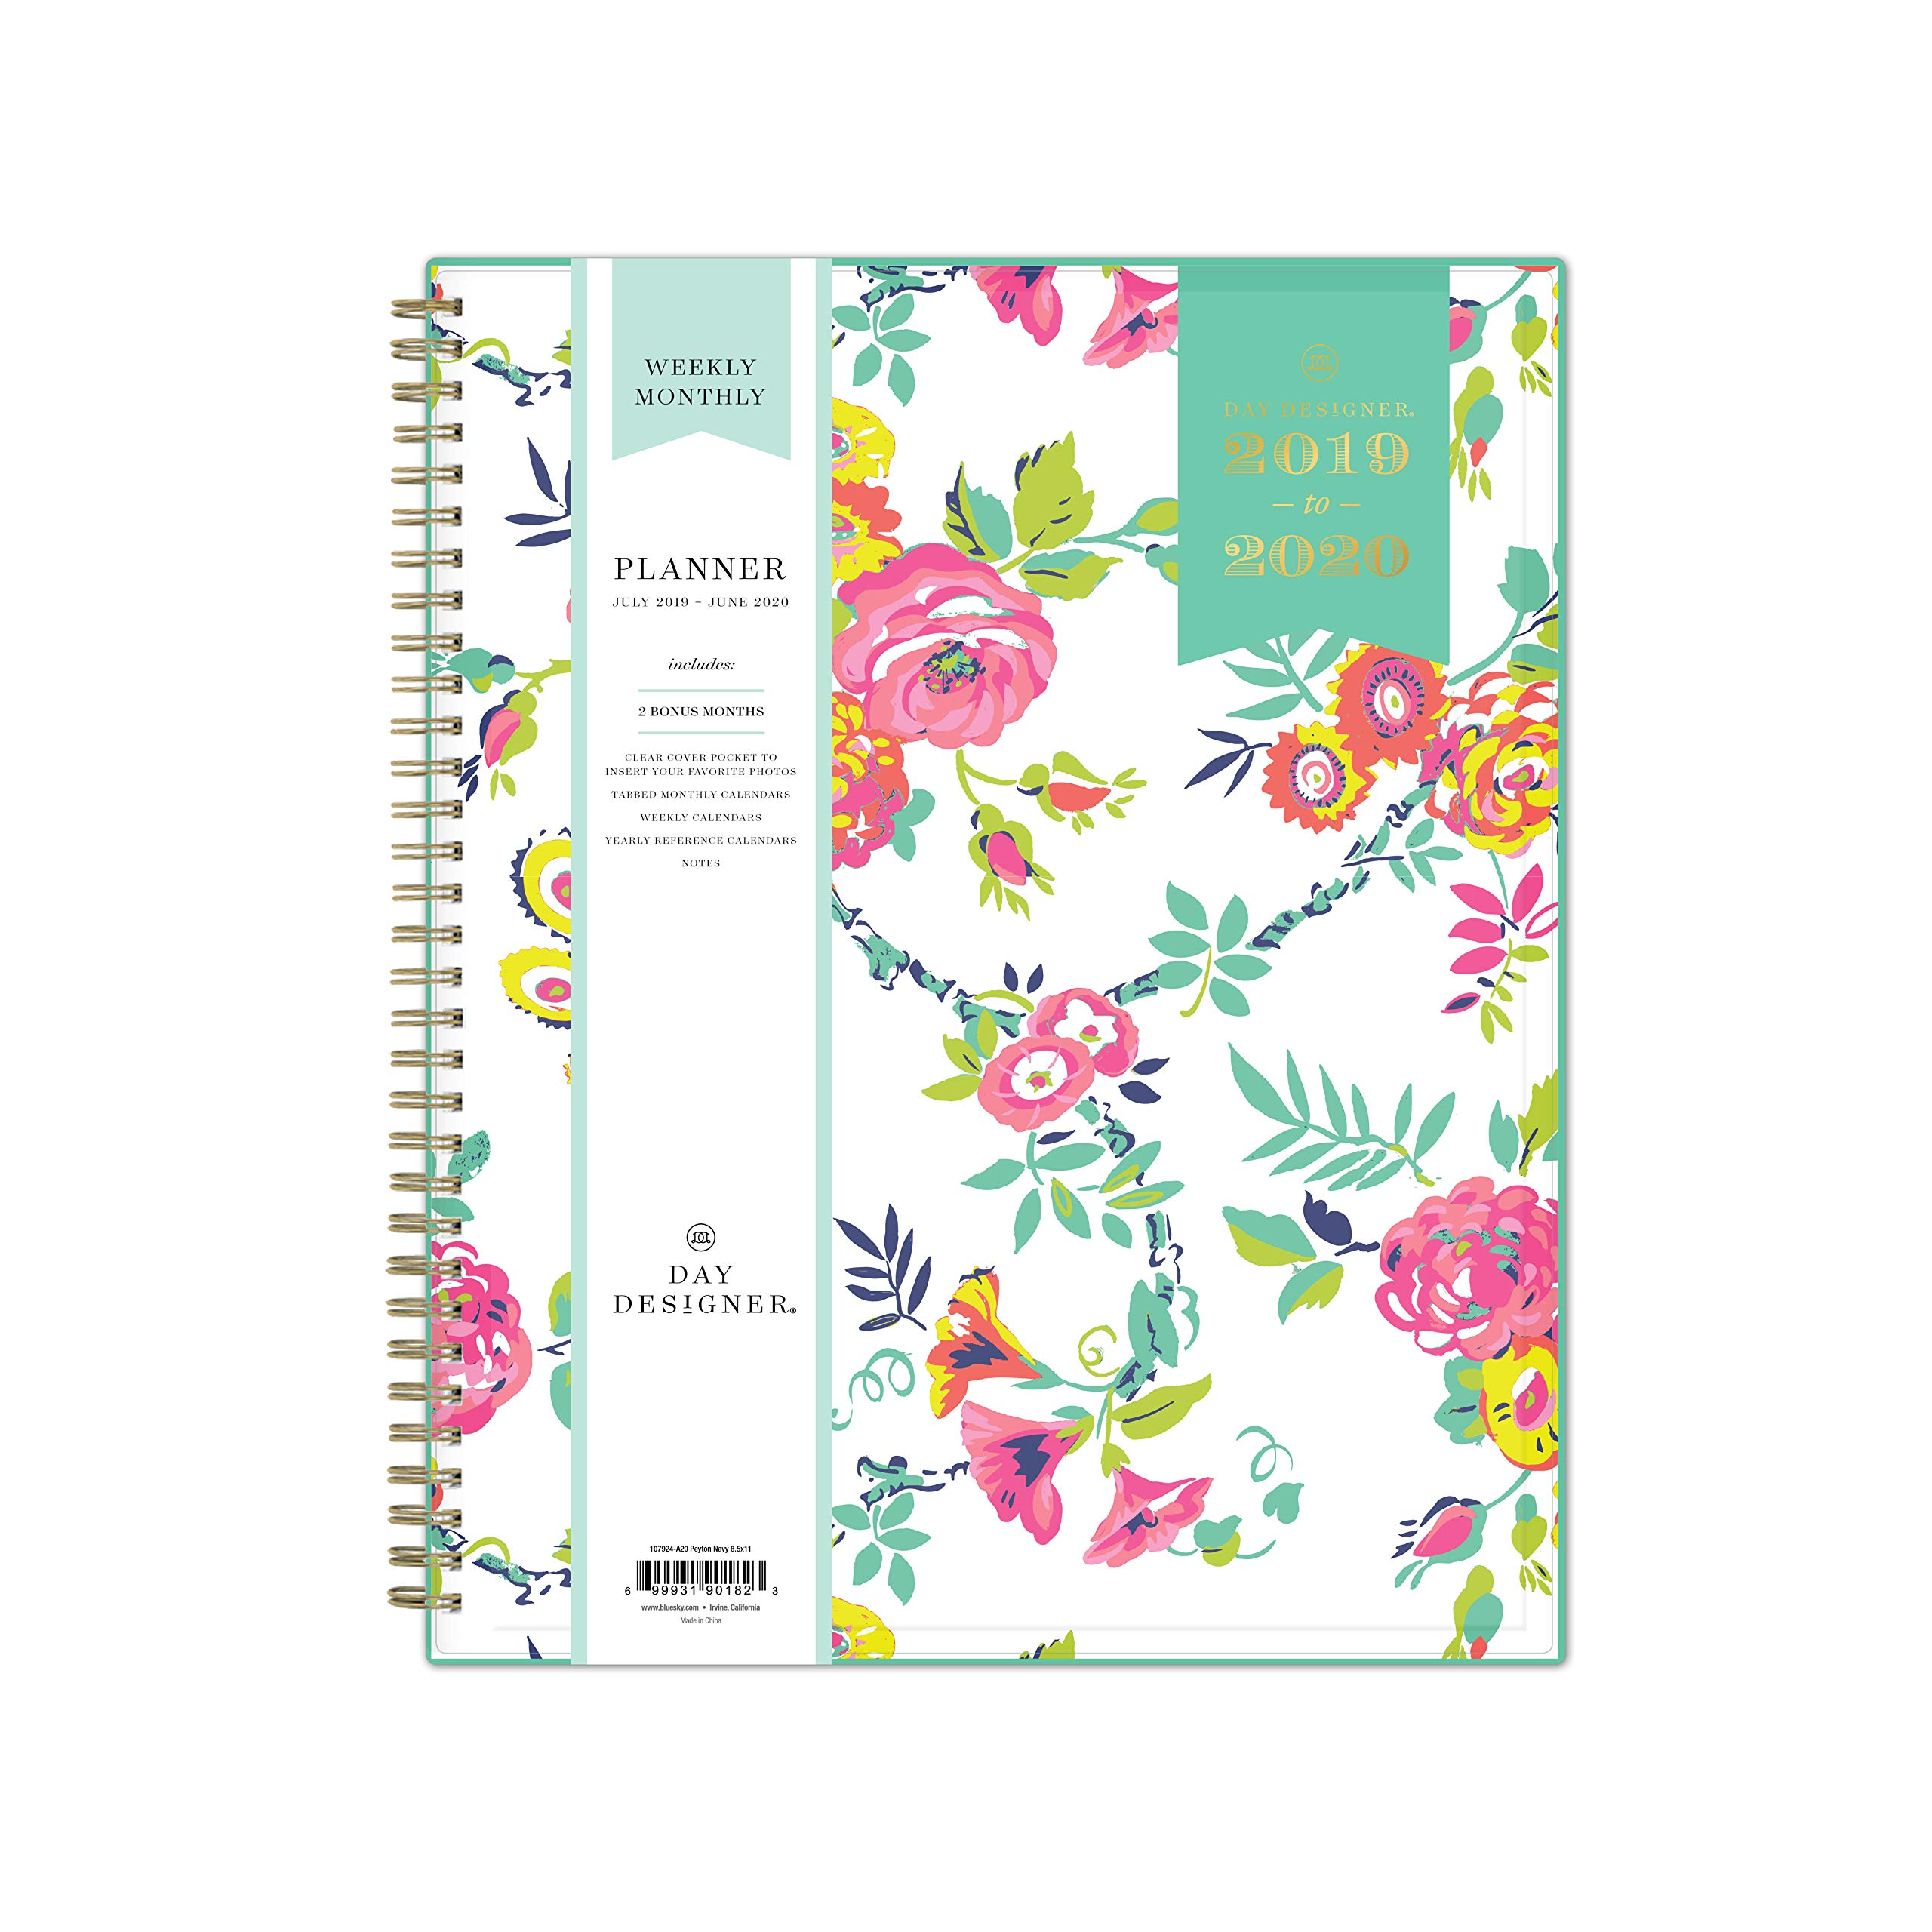 Day Designer for Blue Sky 2019-2020 Academic Year Weekly & Monthly Planner, Flexible Cover, Twin-Wire Binding, 8.5'' x 11'', Peyton White by Blue Sky